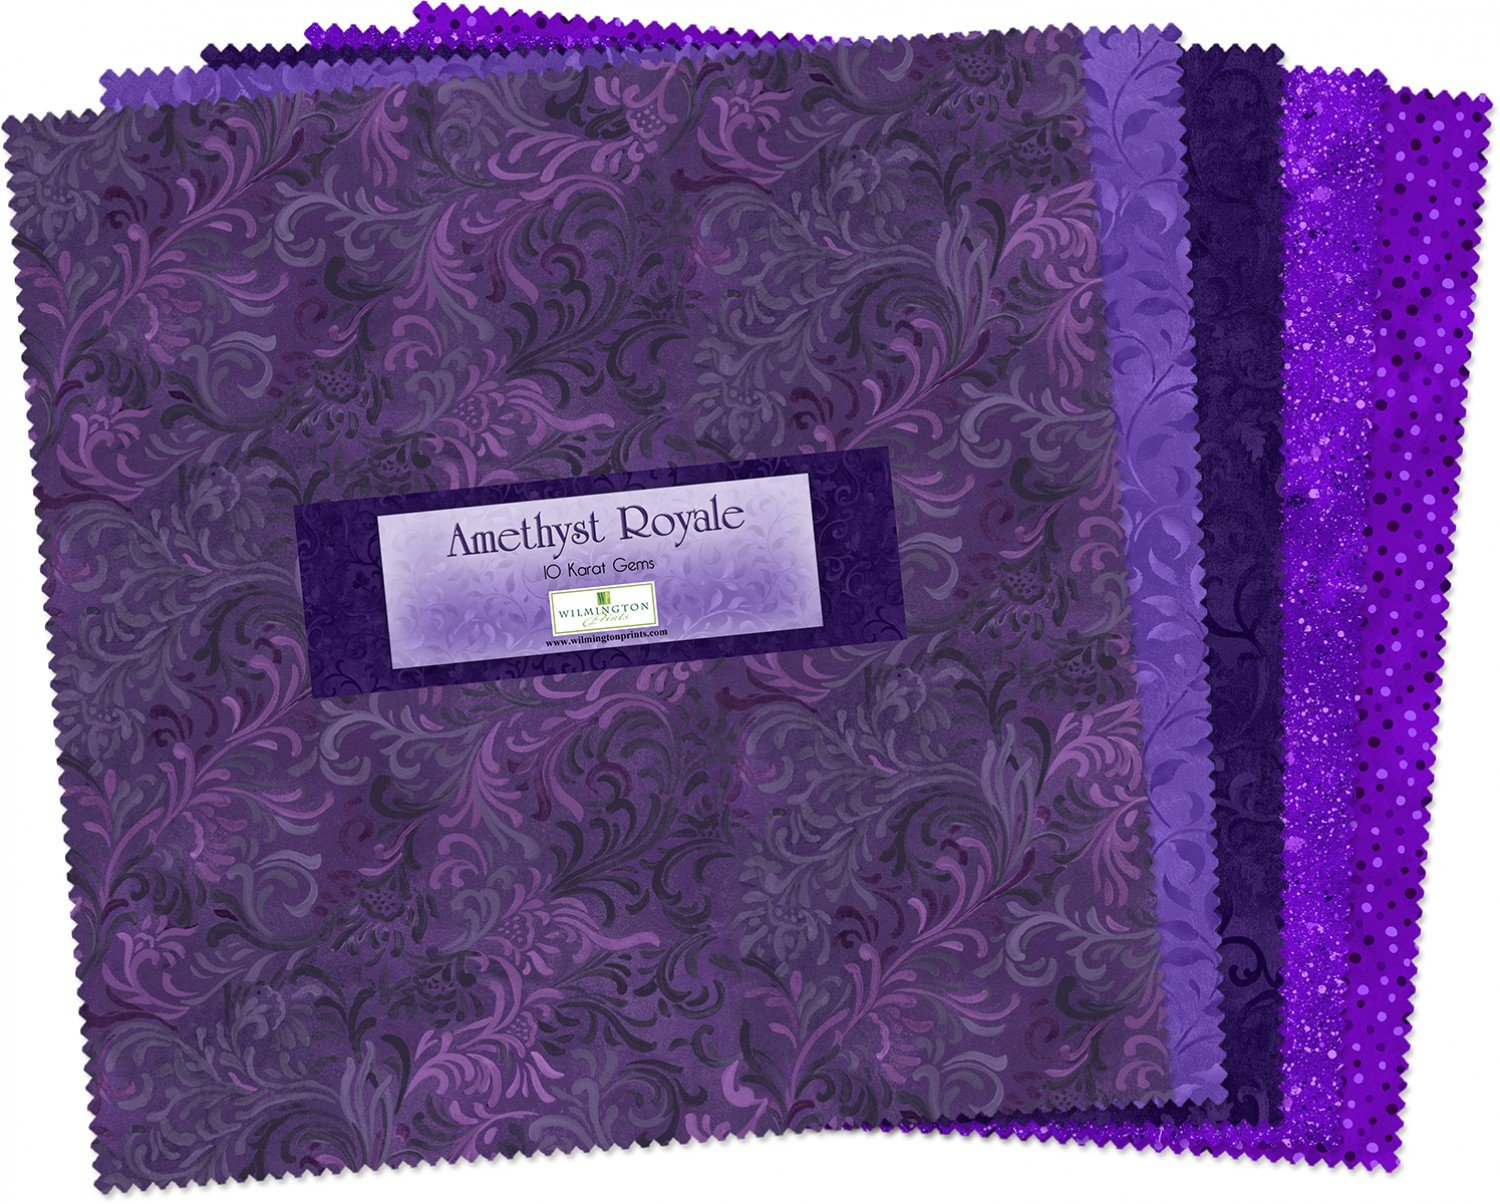 10in Squares Amethyst Royale 24 pcs